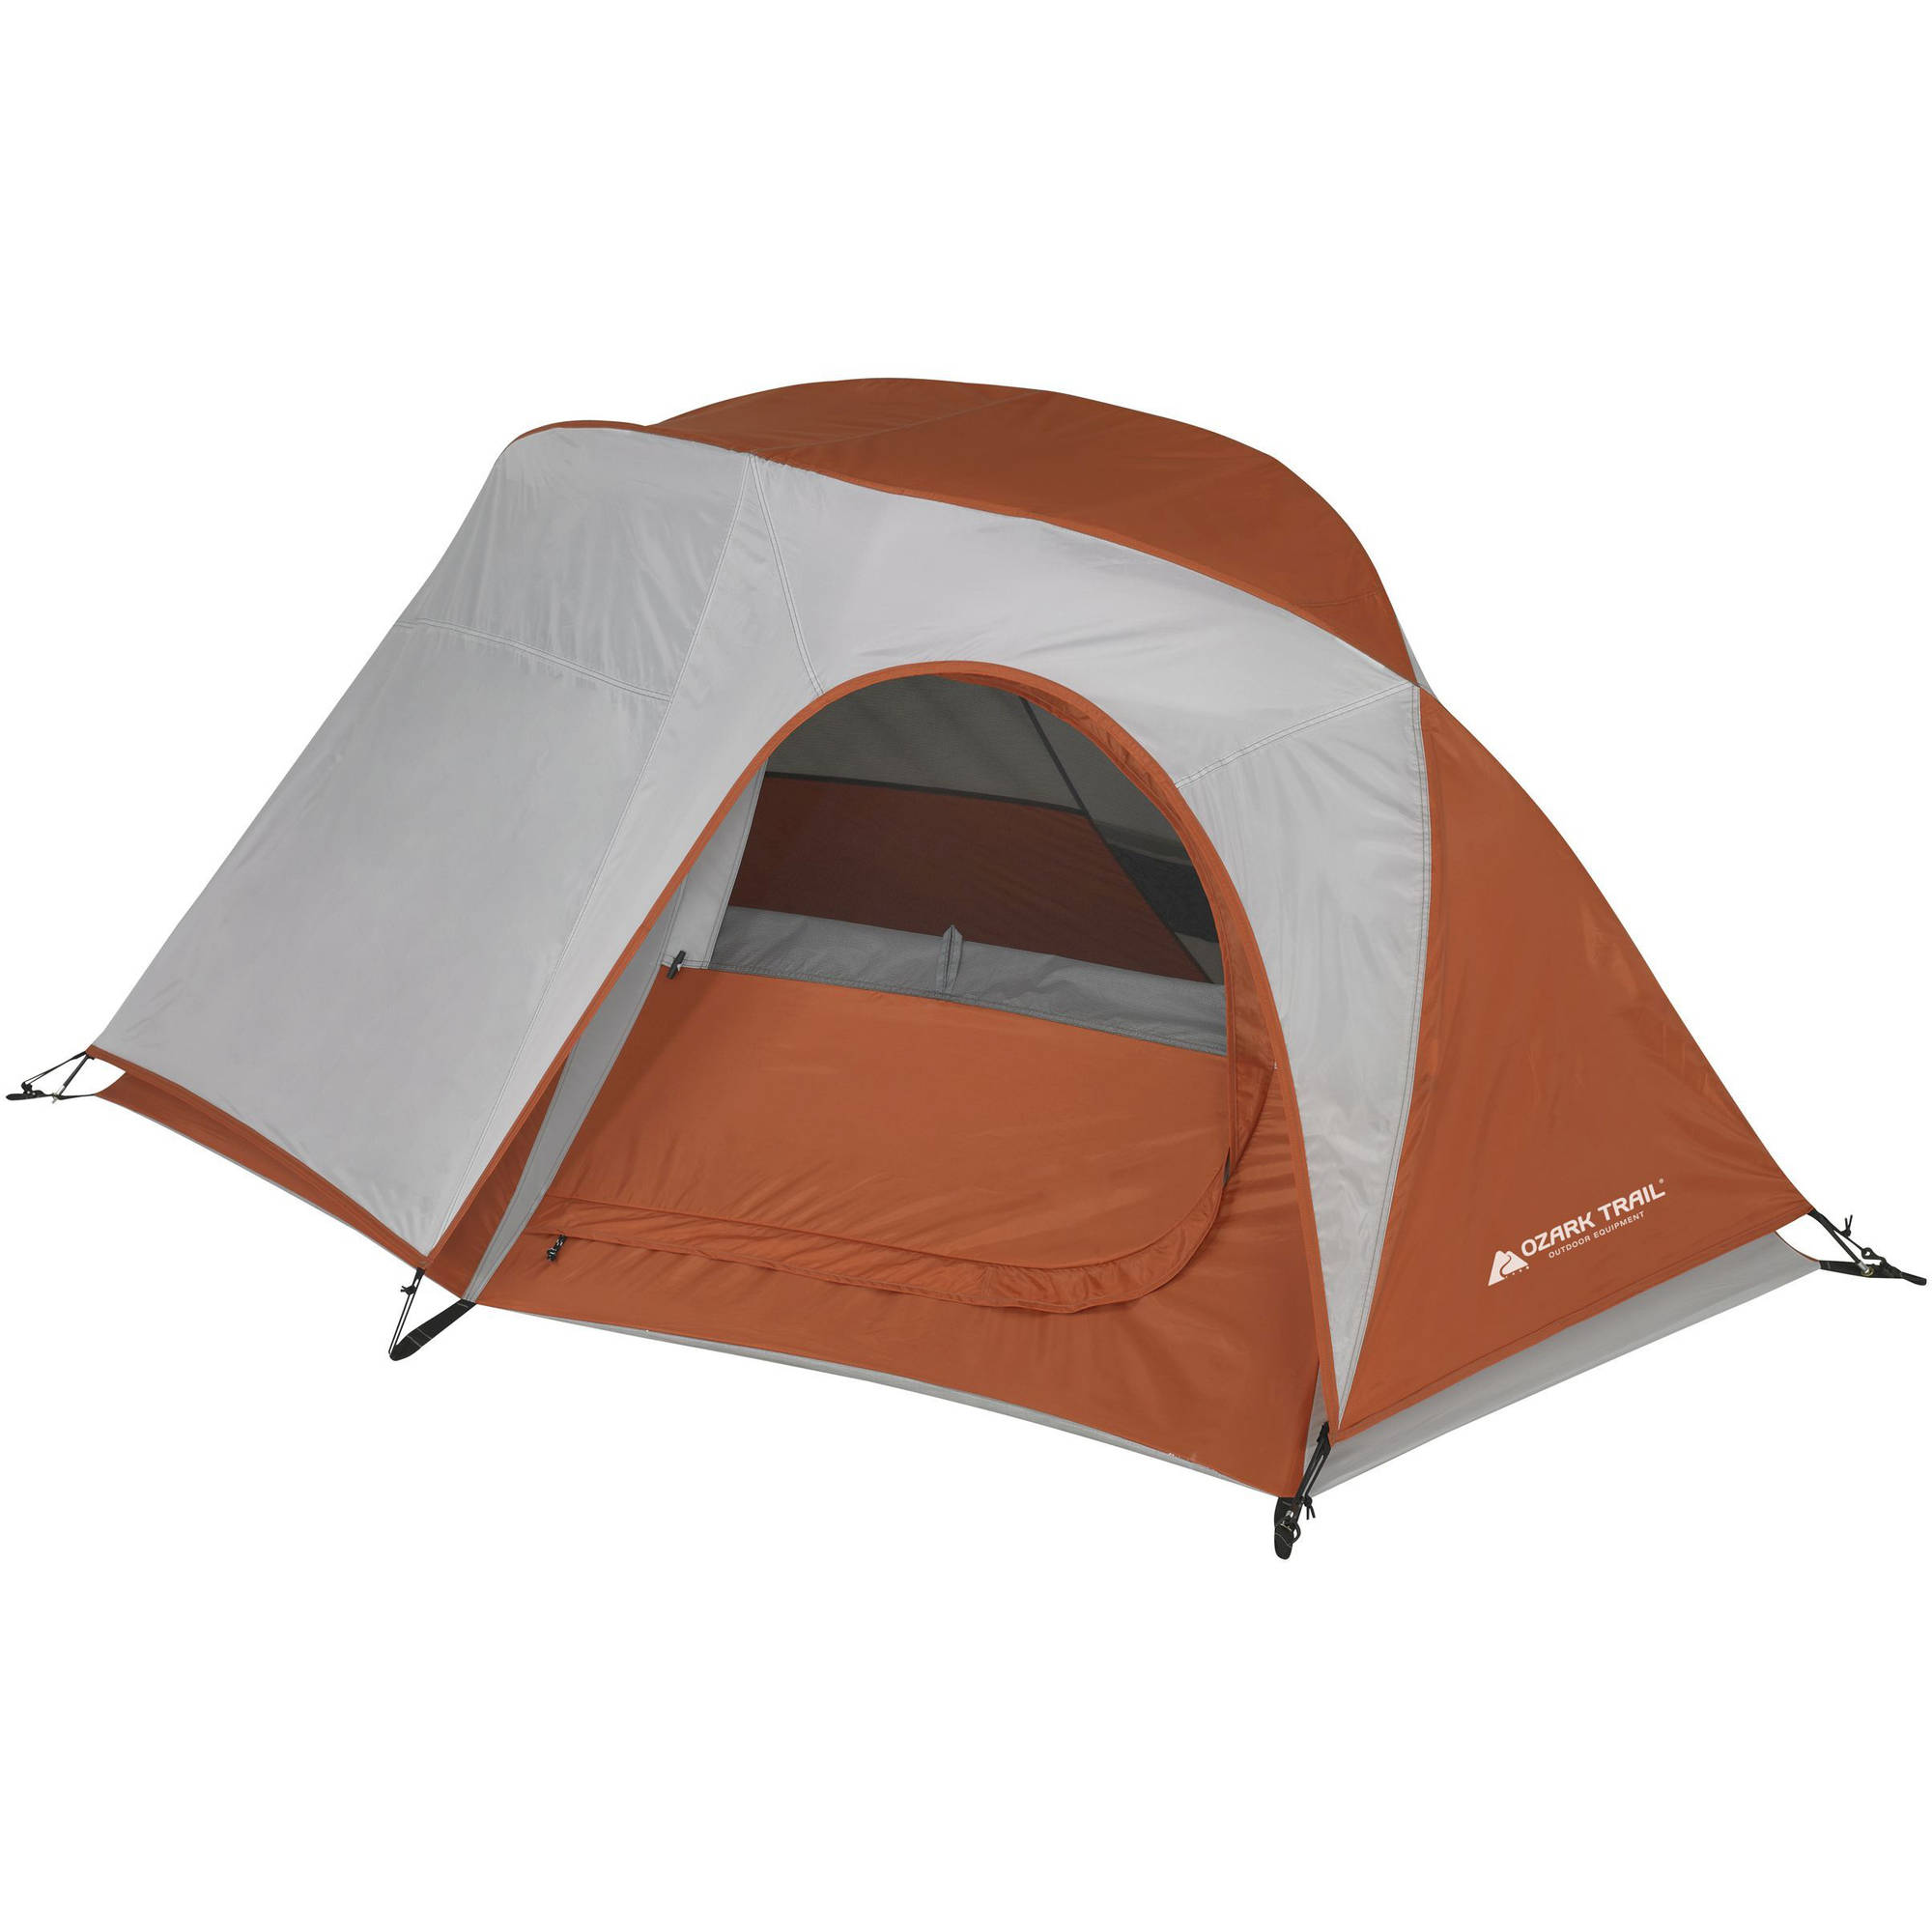 Ozark Trail 1-Person Hiker Tent  sc 1 st  Walmart & Ozark Trail 1-Person Hiker Tent - Walmart.com